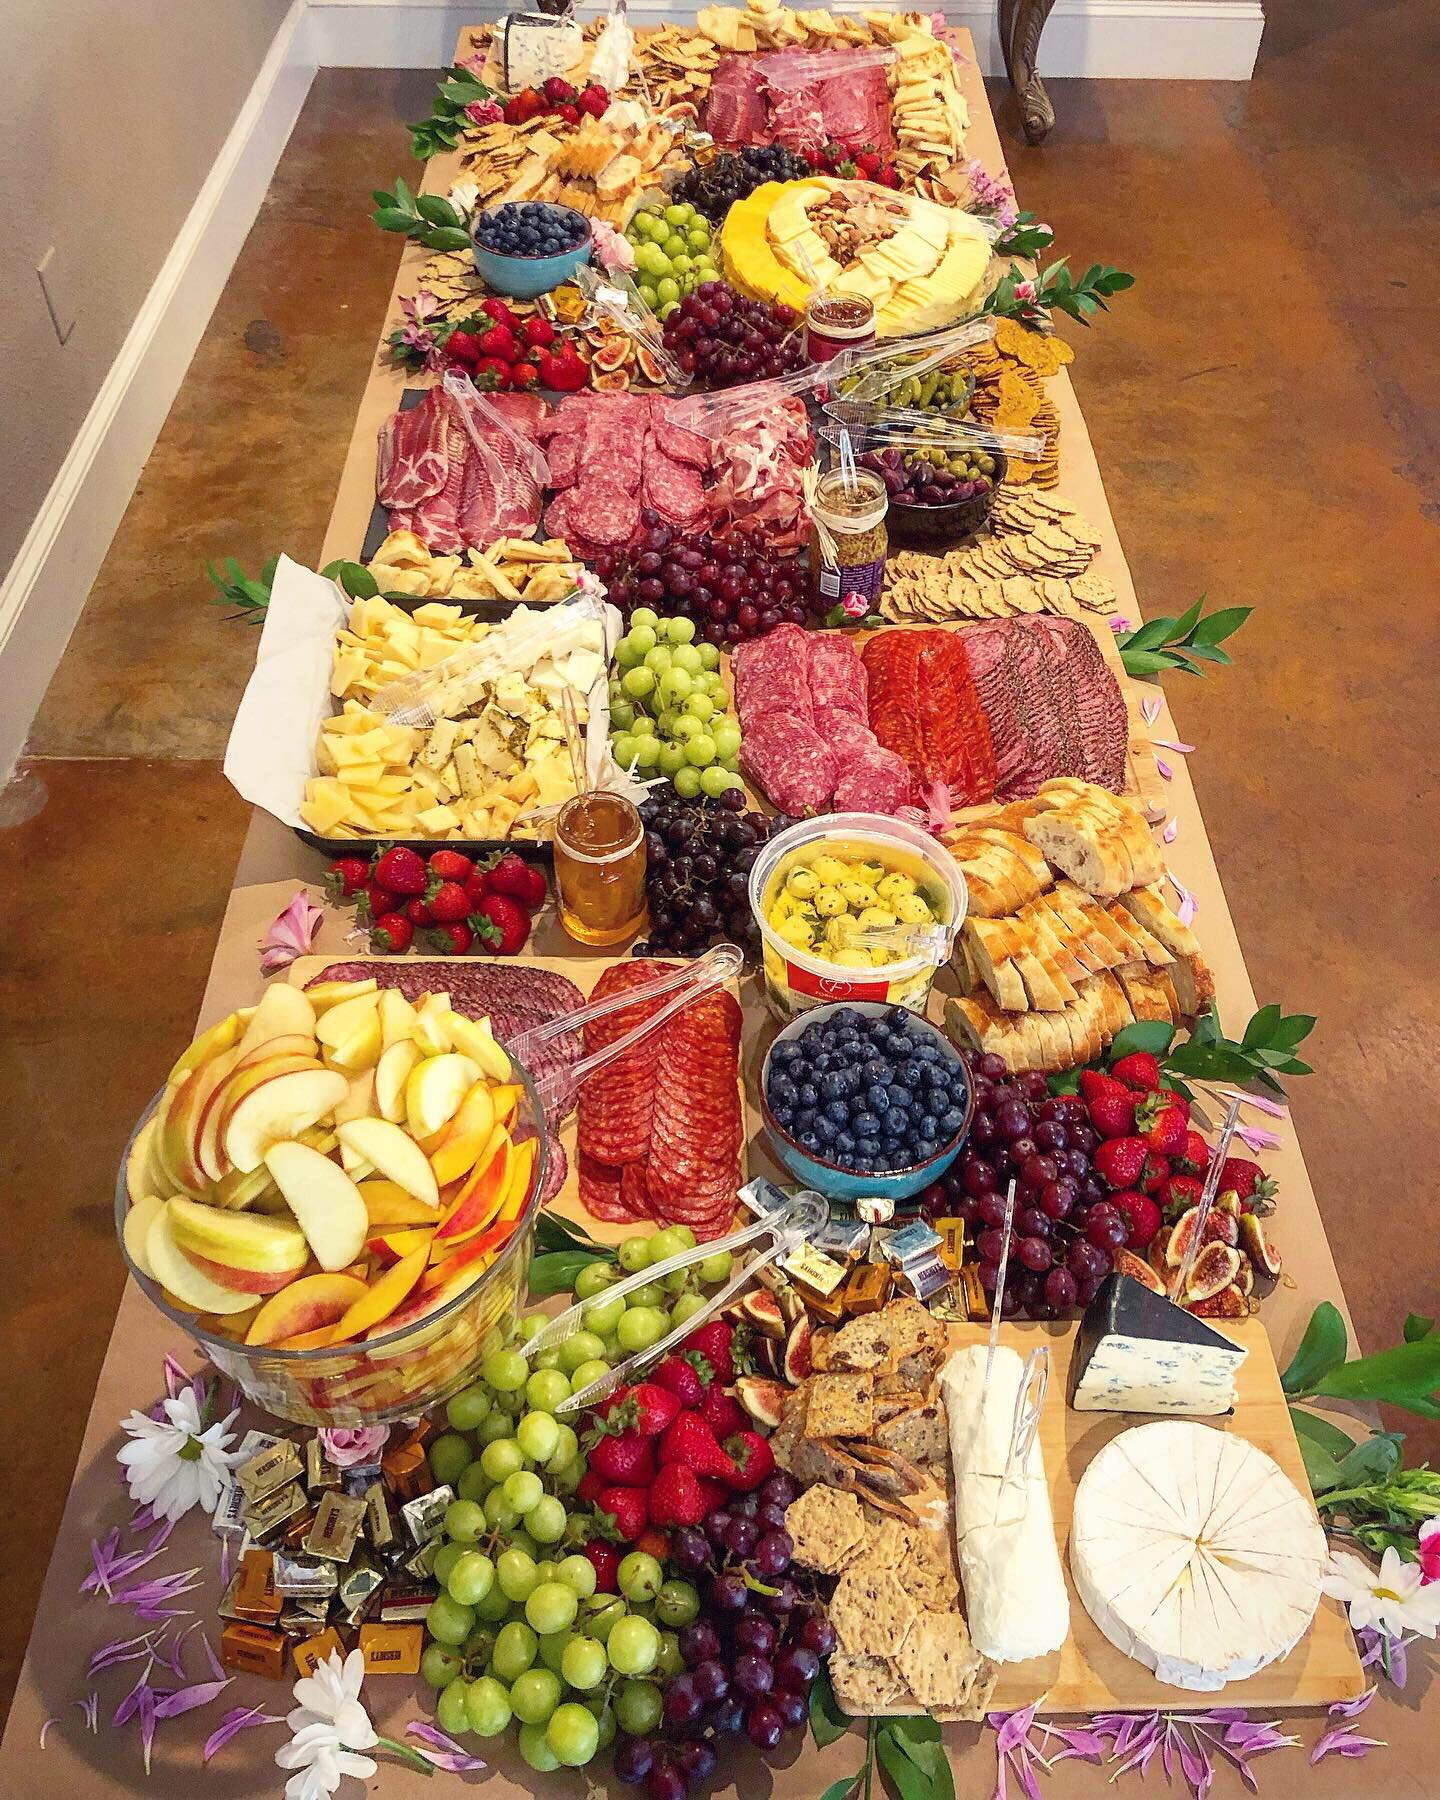 Assembled a meats, fruits, cheeses, nuts and more table